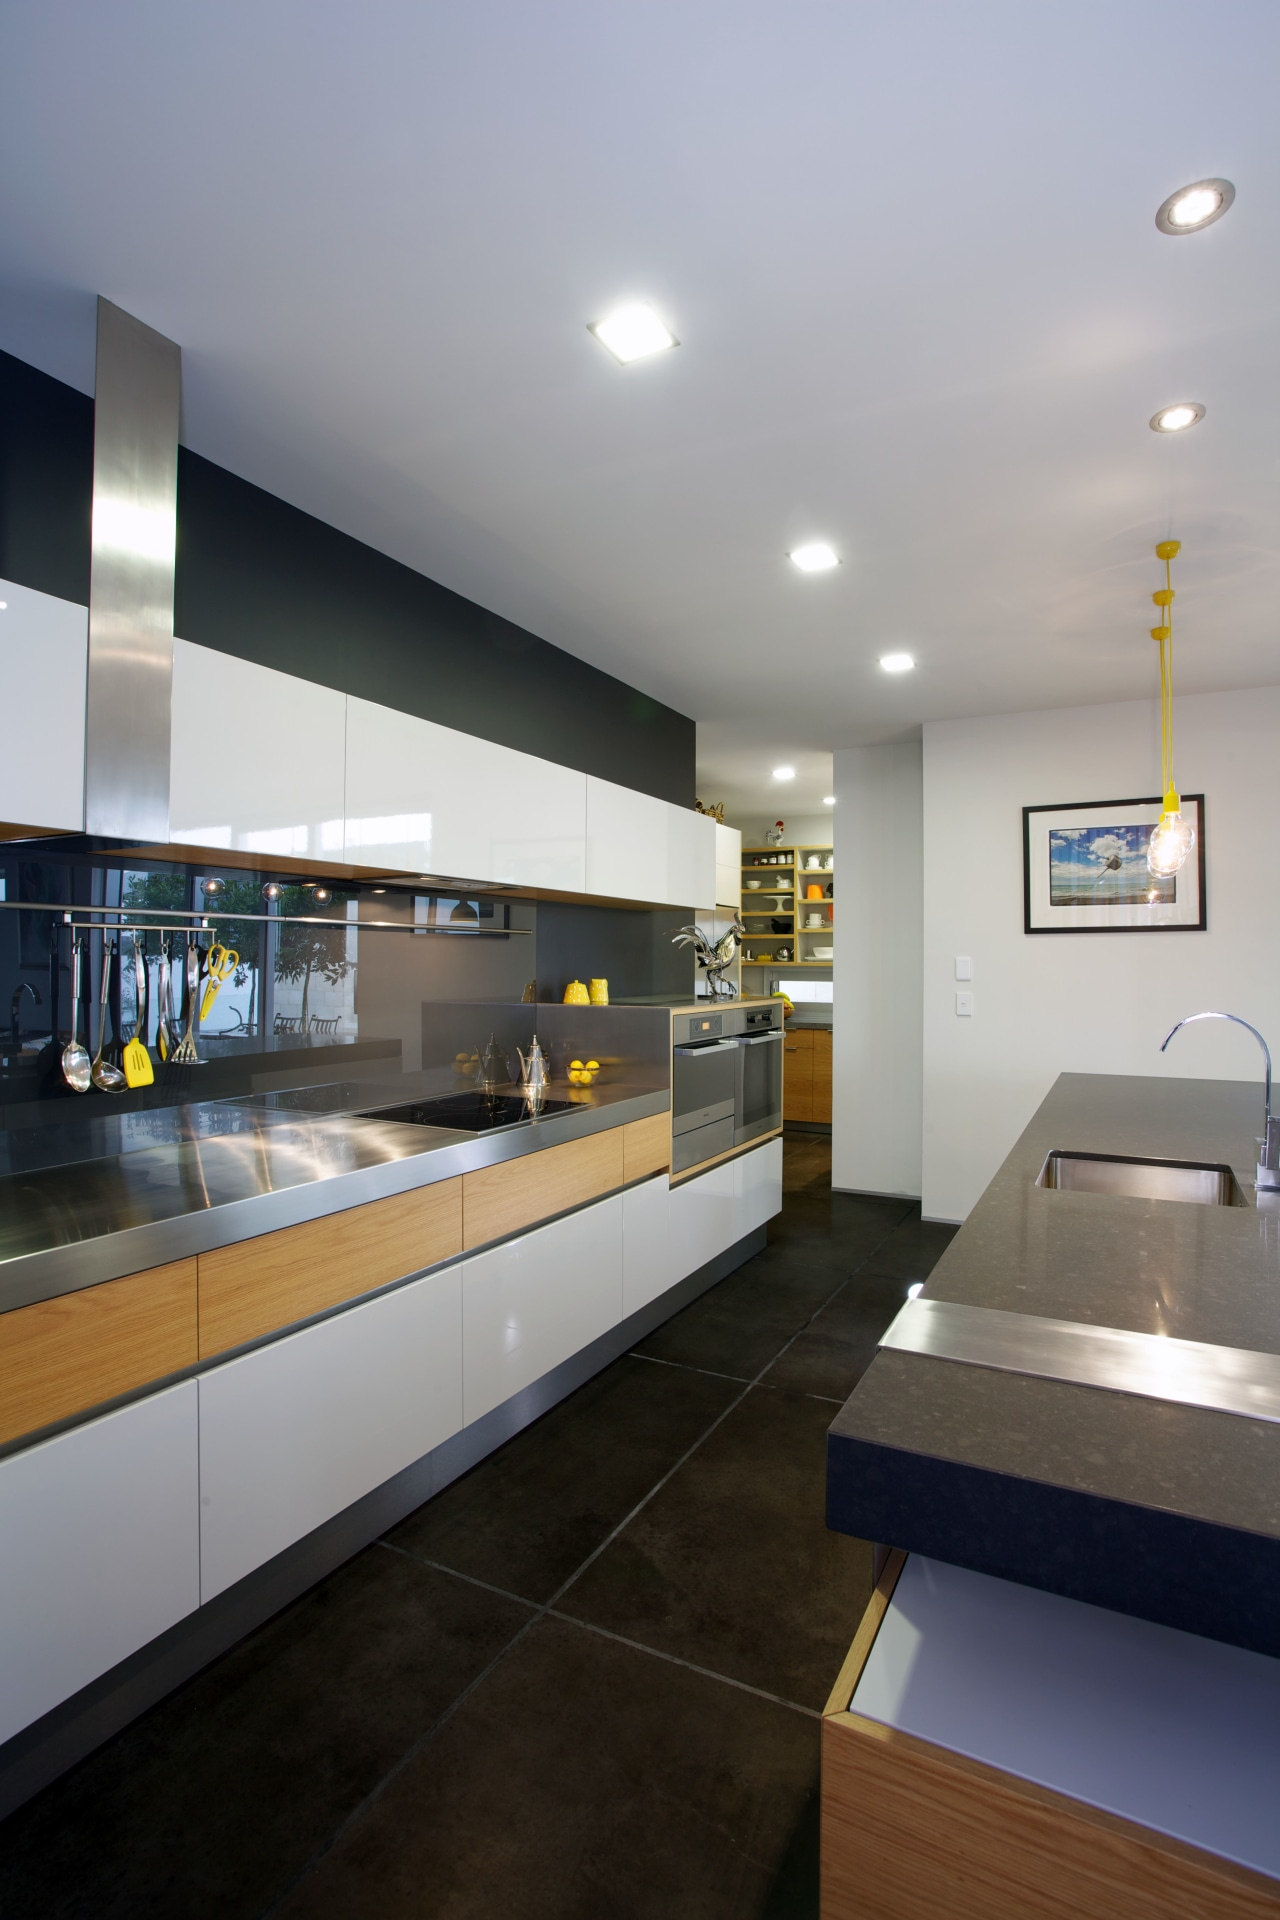 Contemporary kitchen with stainless steel architecture, house, interior design, kitchen, gray, black